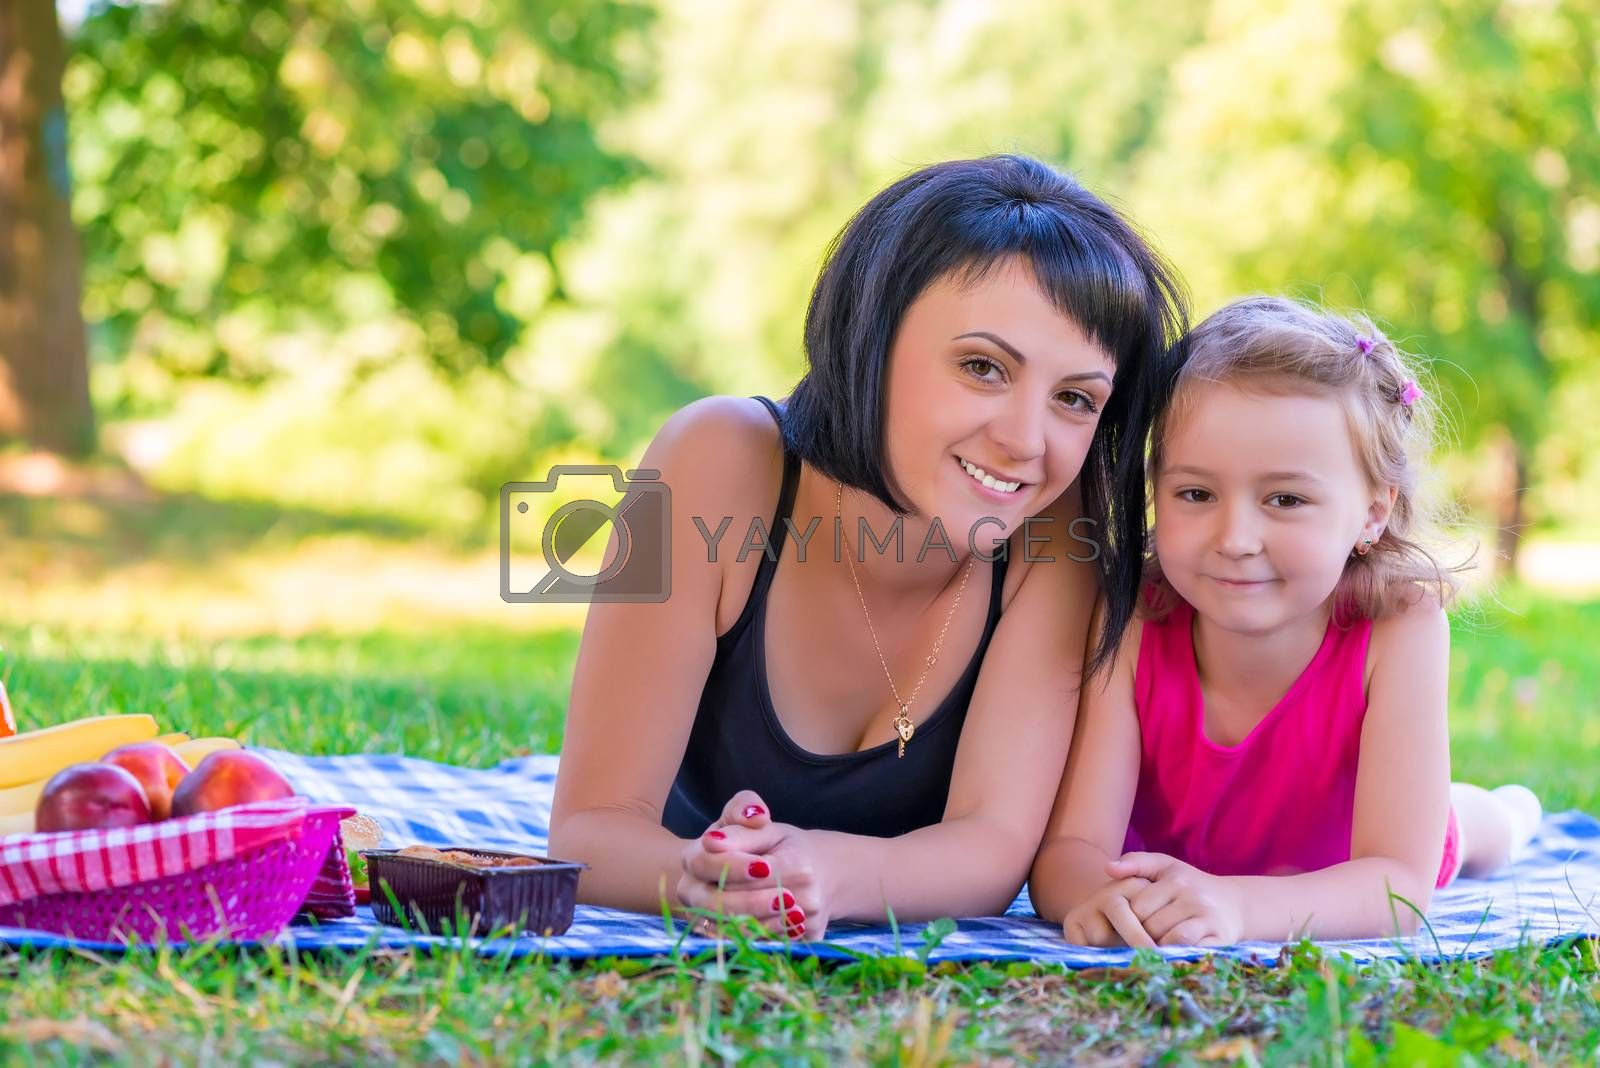 portrait of a smiling mother and her daughter on the lawn